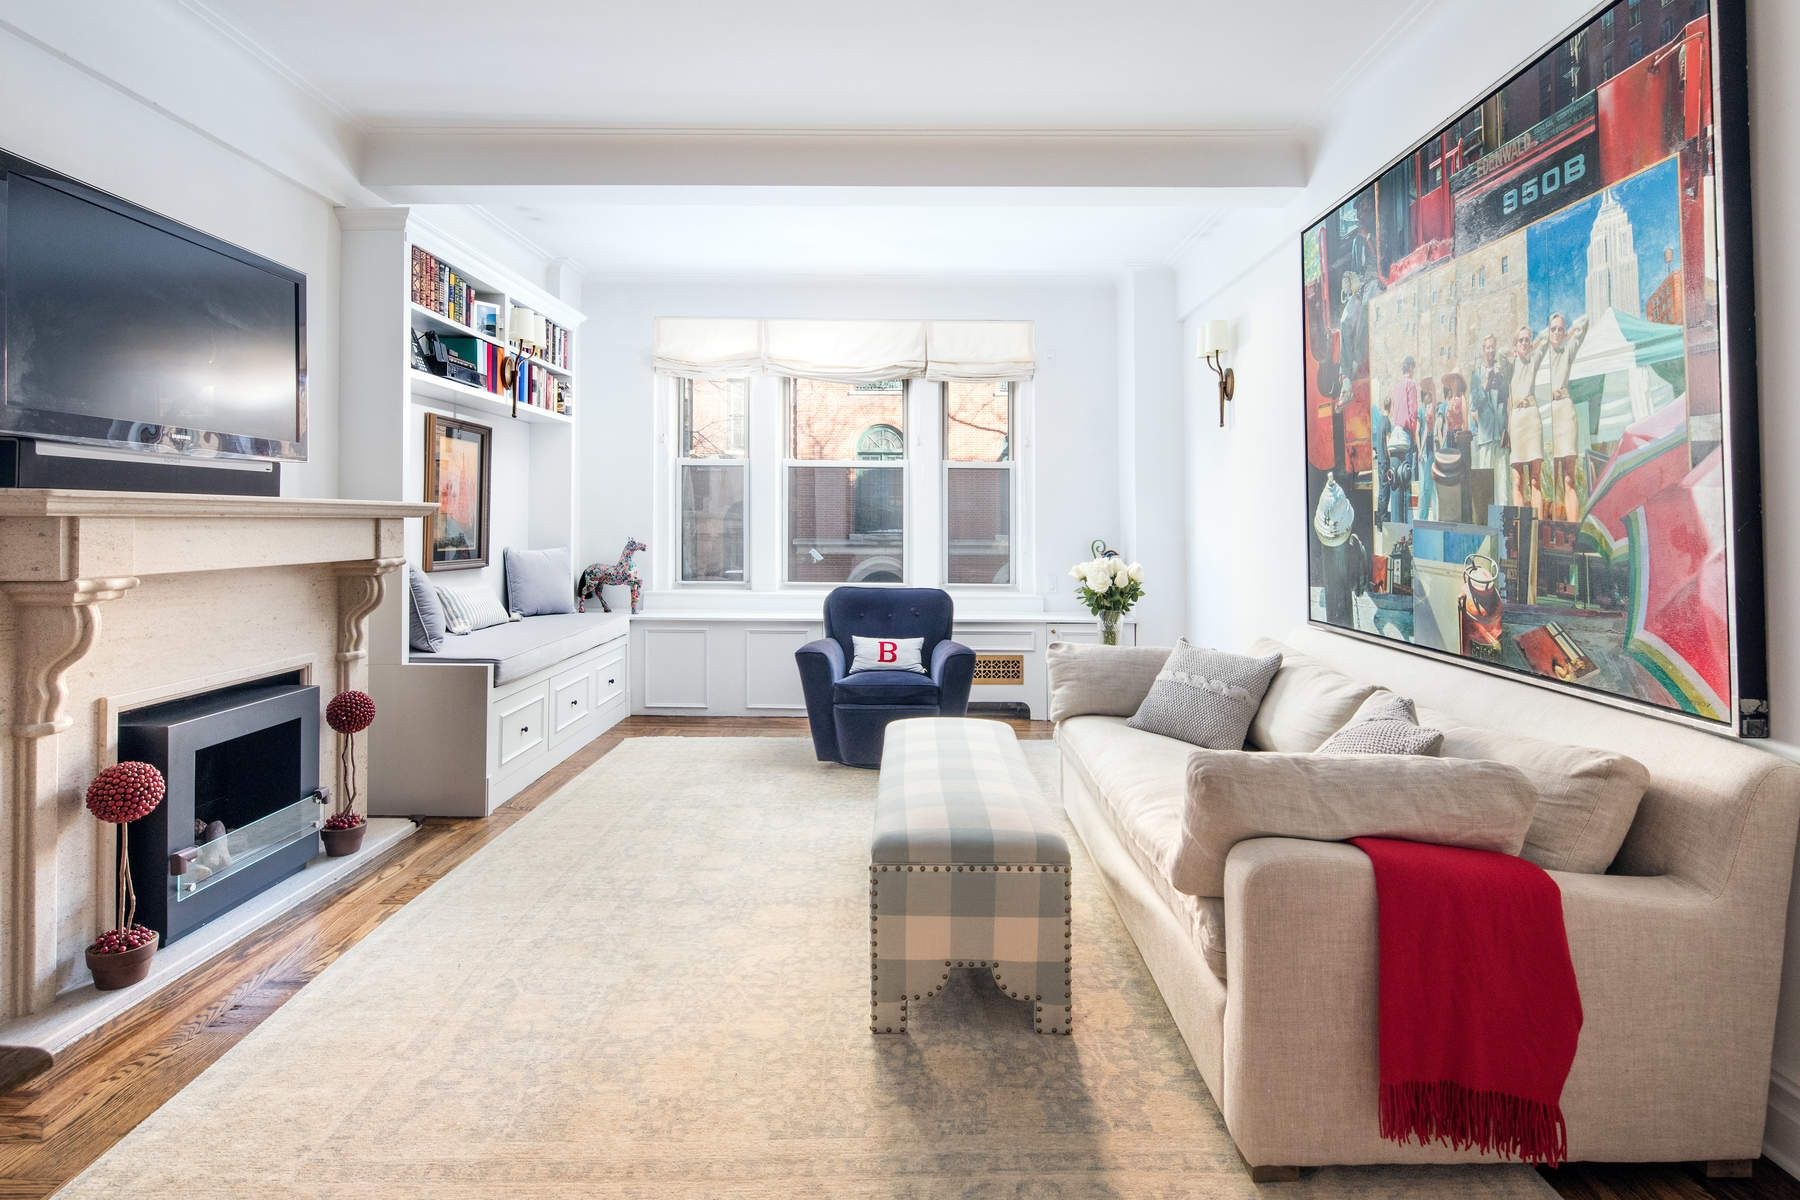 Co-op for Sale at 108 East 91st Street, Apt 2A 108 East 91st Street Apt 2A, Upper East Side, New York, New York, 10128 United States